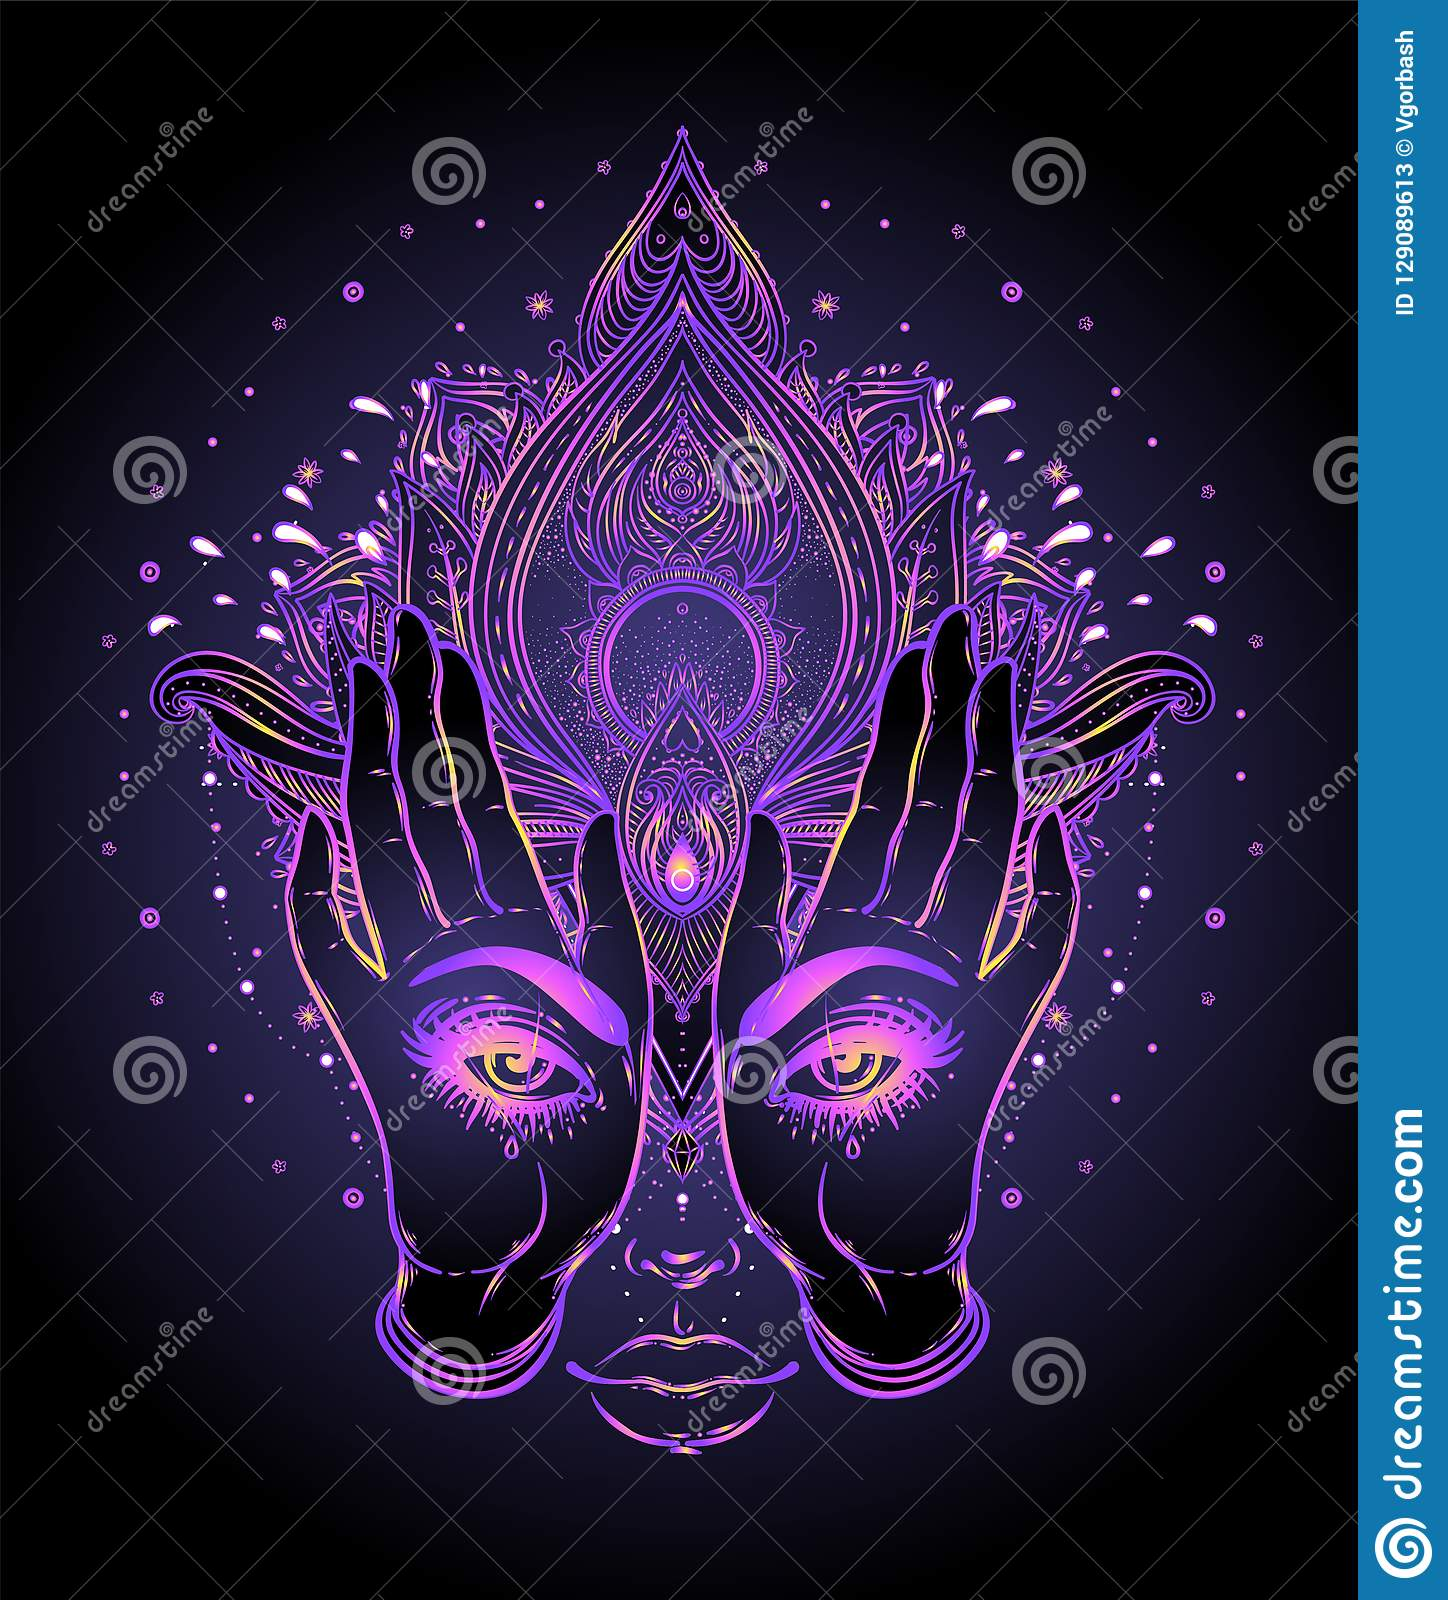 Mysterious Creature With Eyes On The Hands Over Vector Ornamental